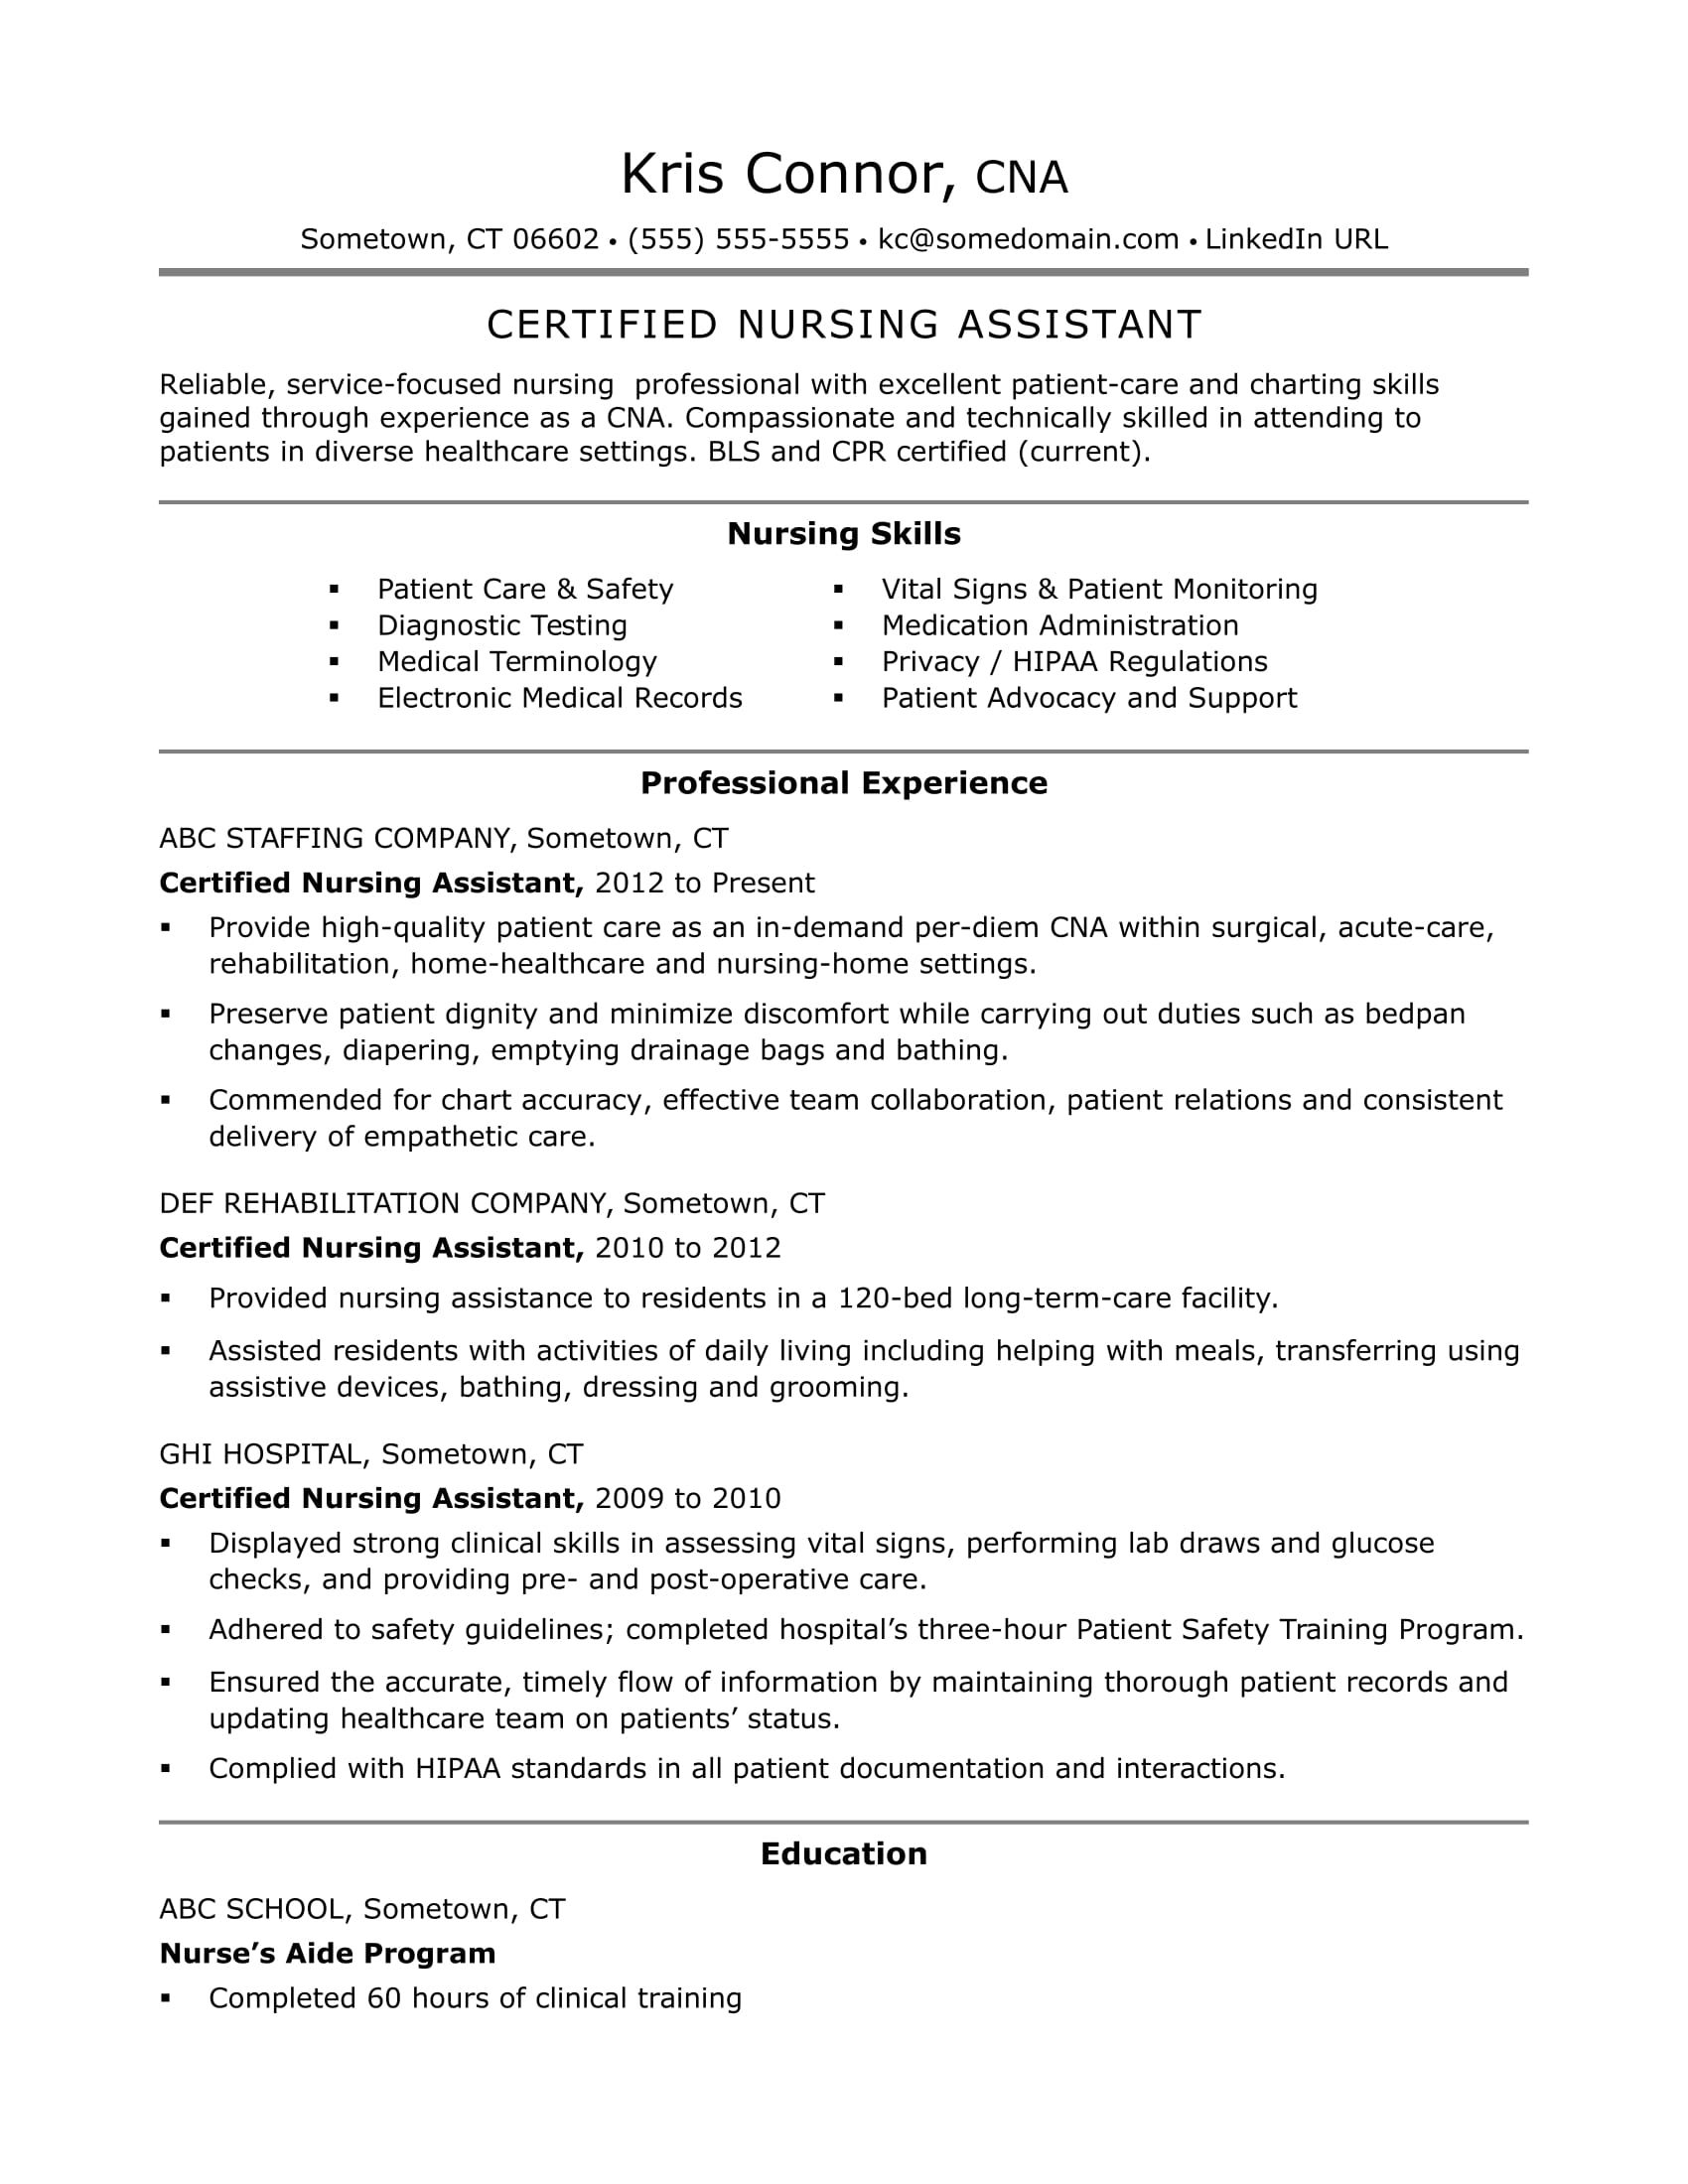 cna resume example - Nursing Aide Resume Sample